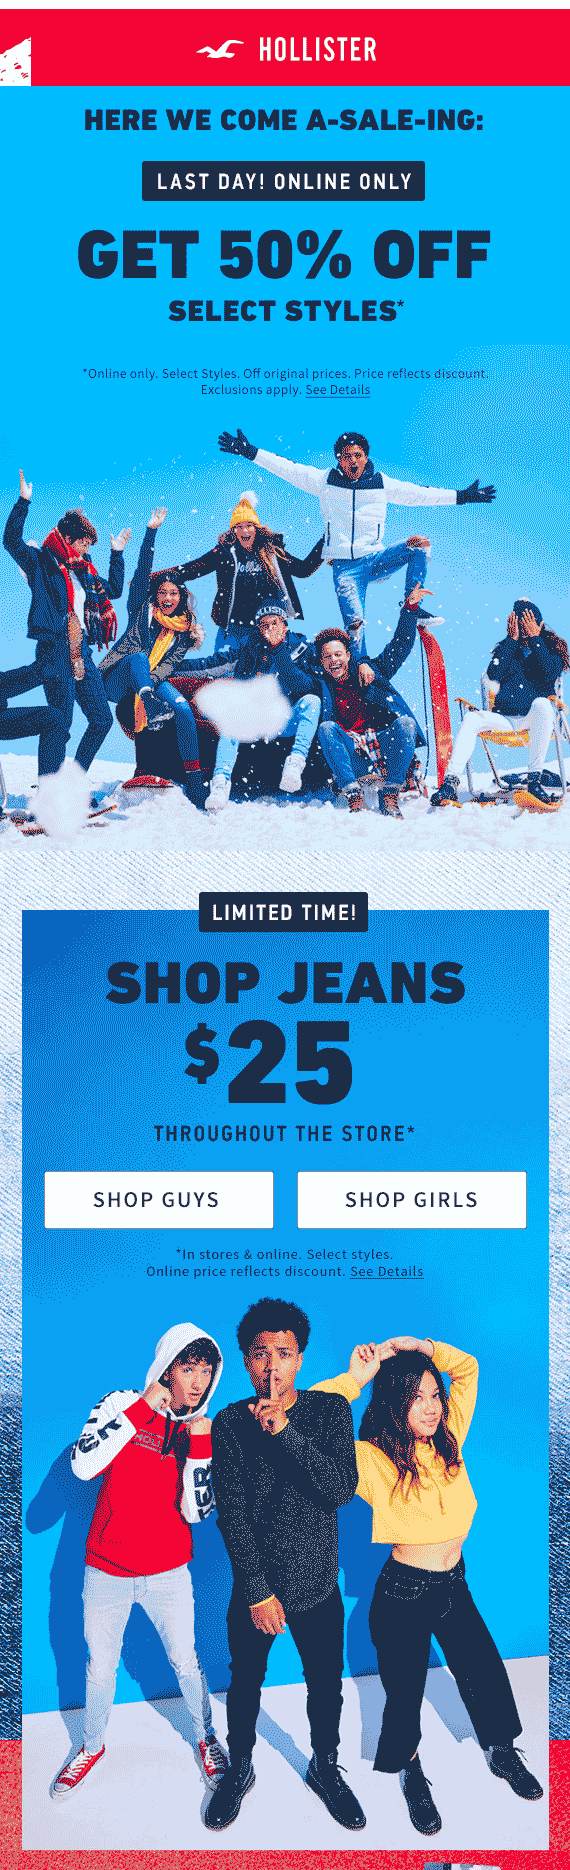 Hollister coupons & promo code for [July 2020]